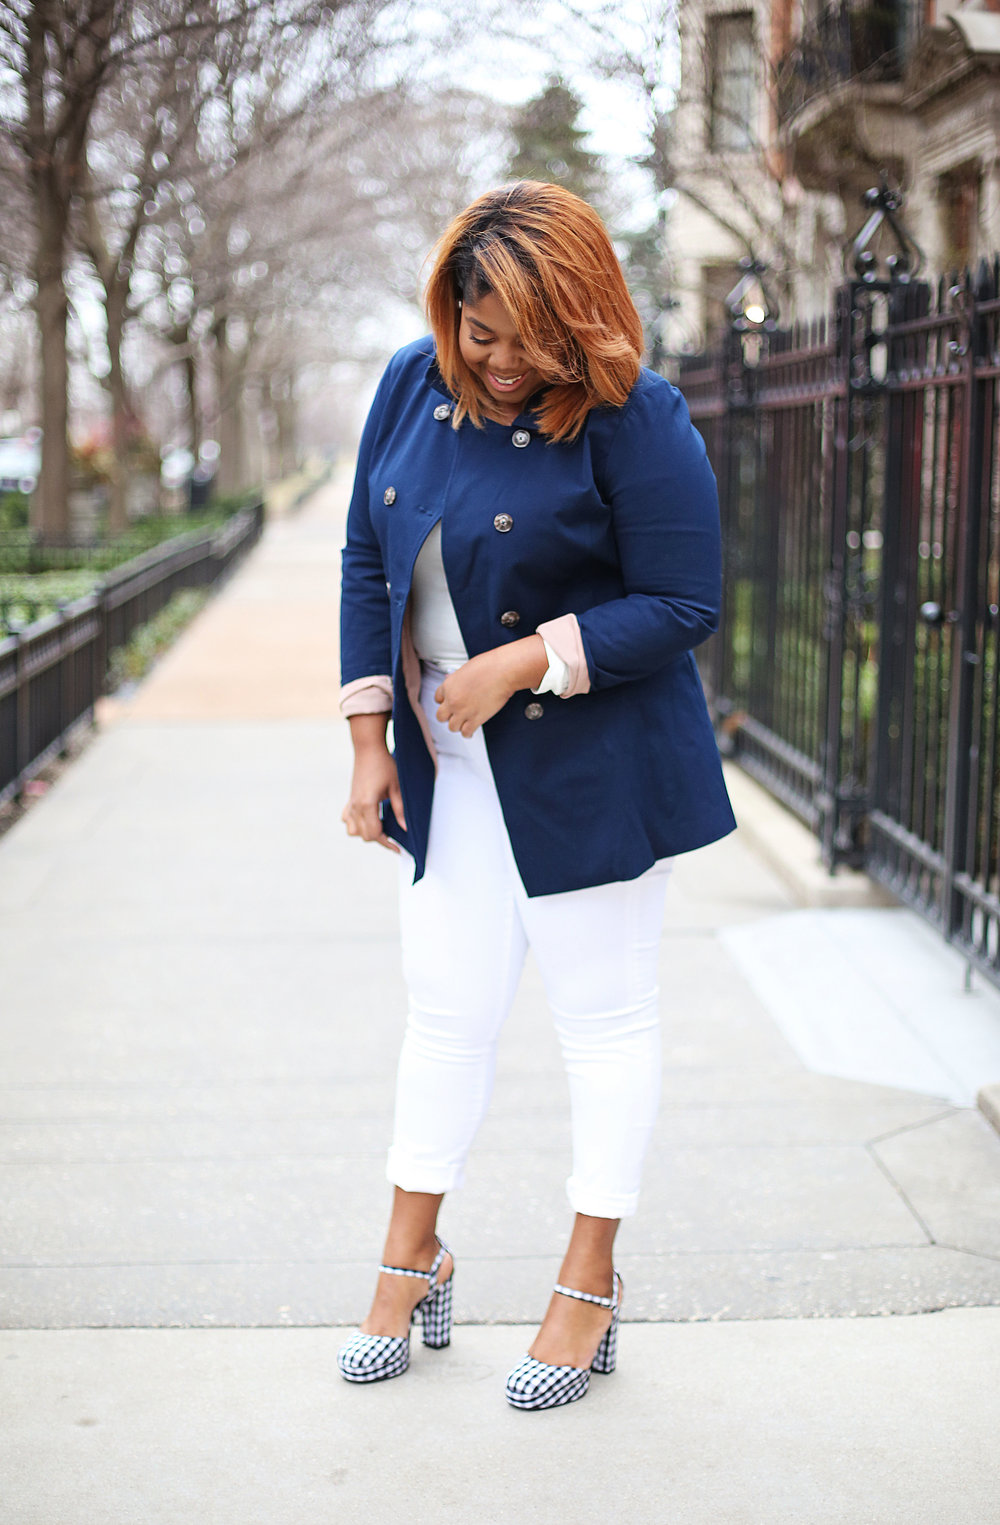 Plus Size Blogger All WHite Spring Style Hayet Rida Chicago Influencer Stitch Fix 6.jpg